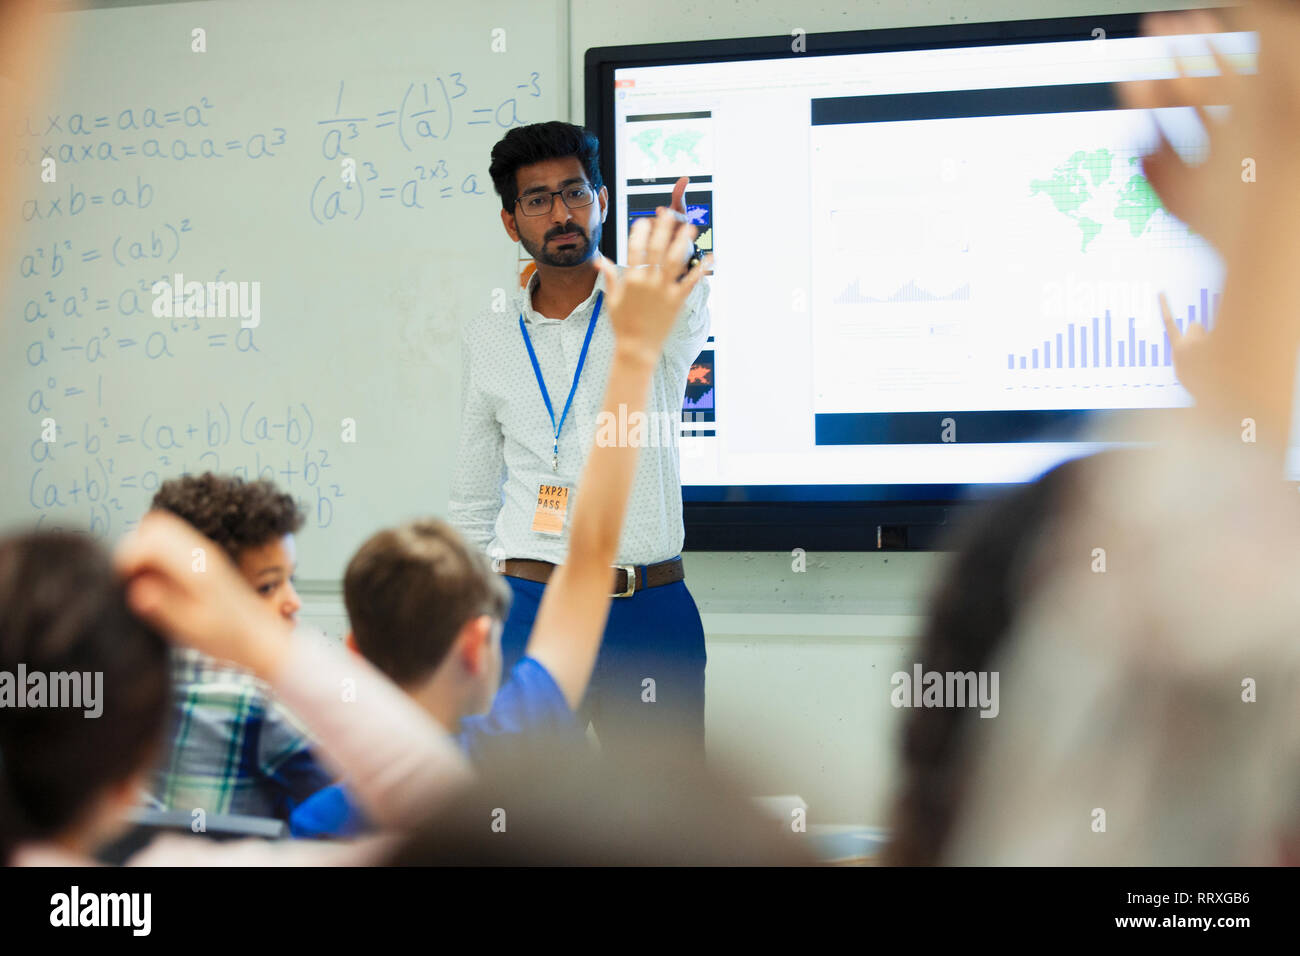 Teacher leading lesson, calling on students in classroom Stock Photo